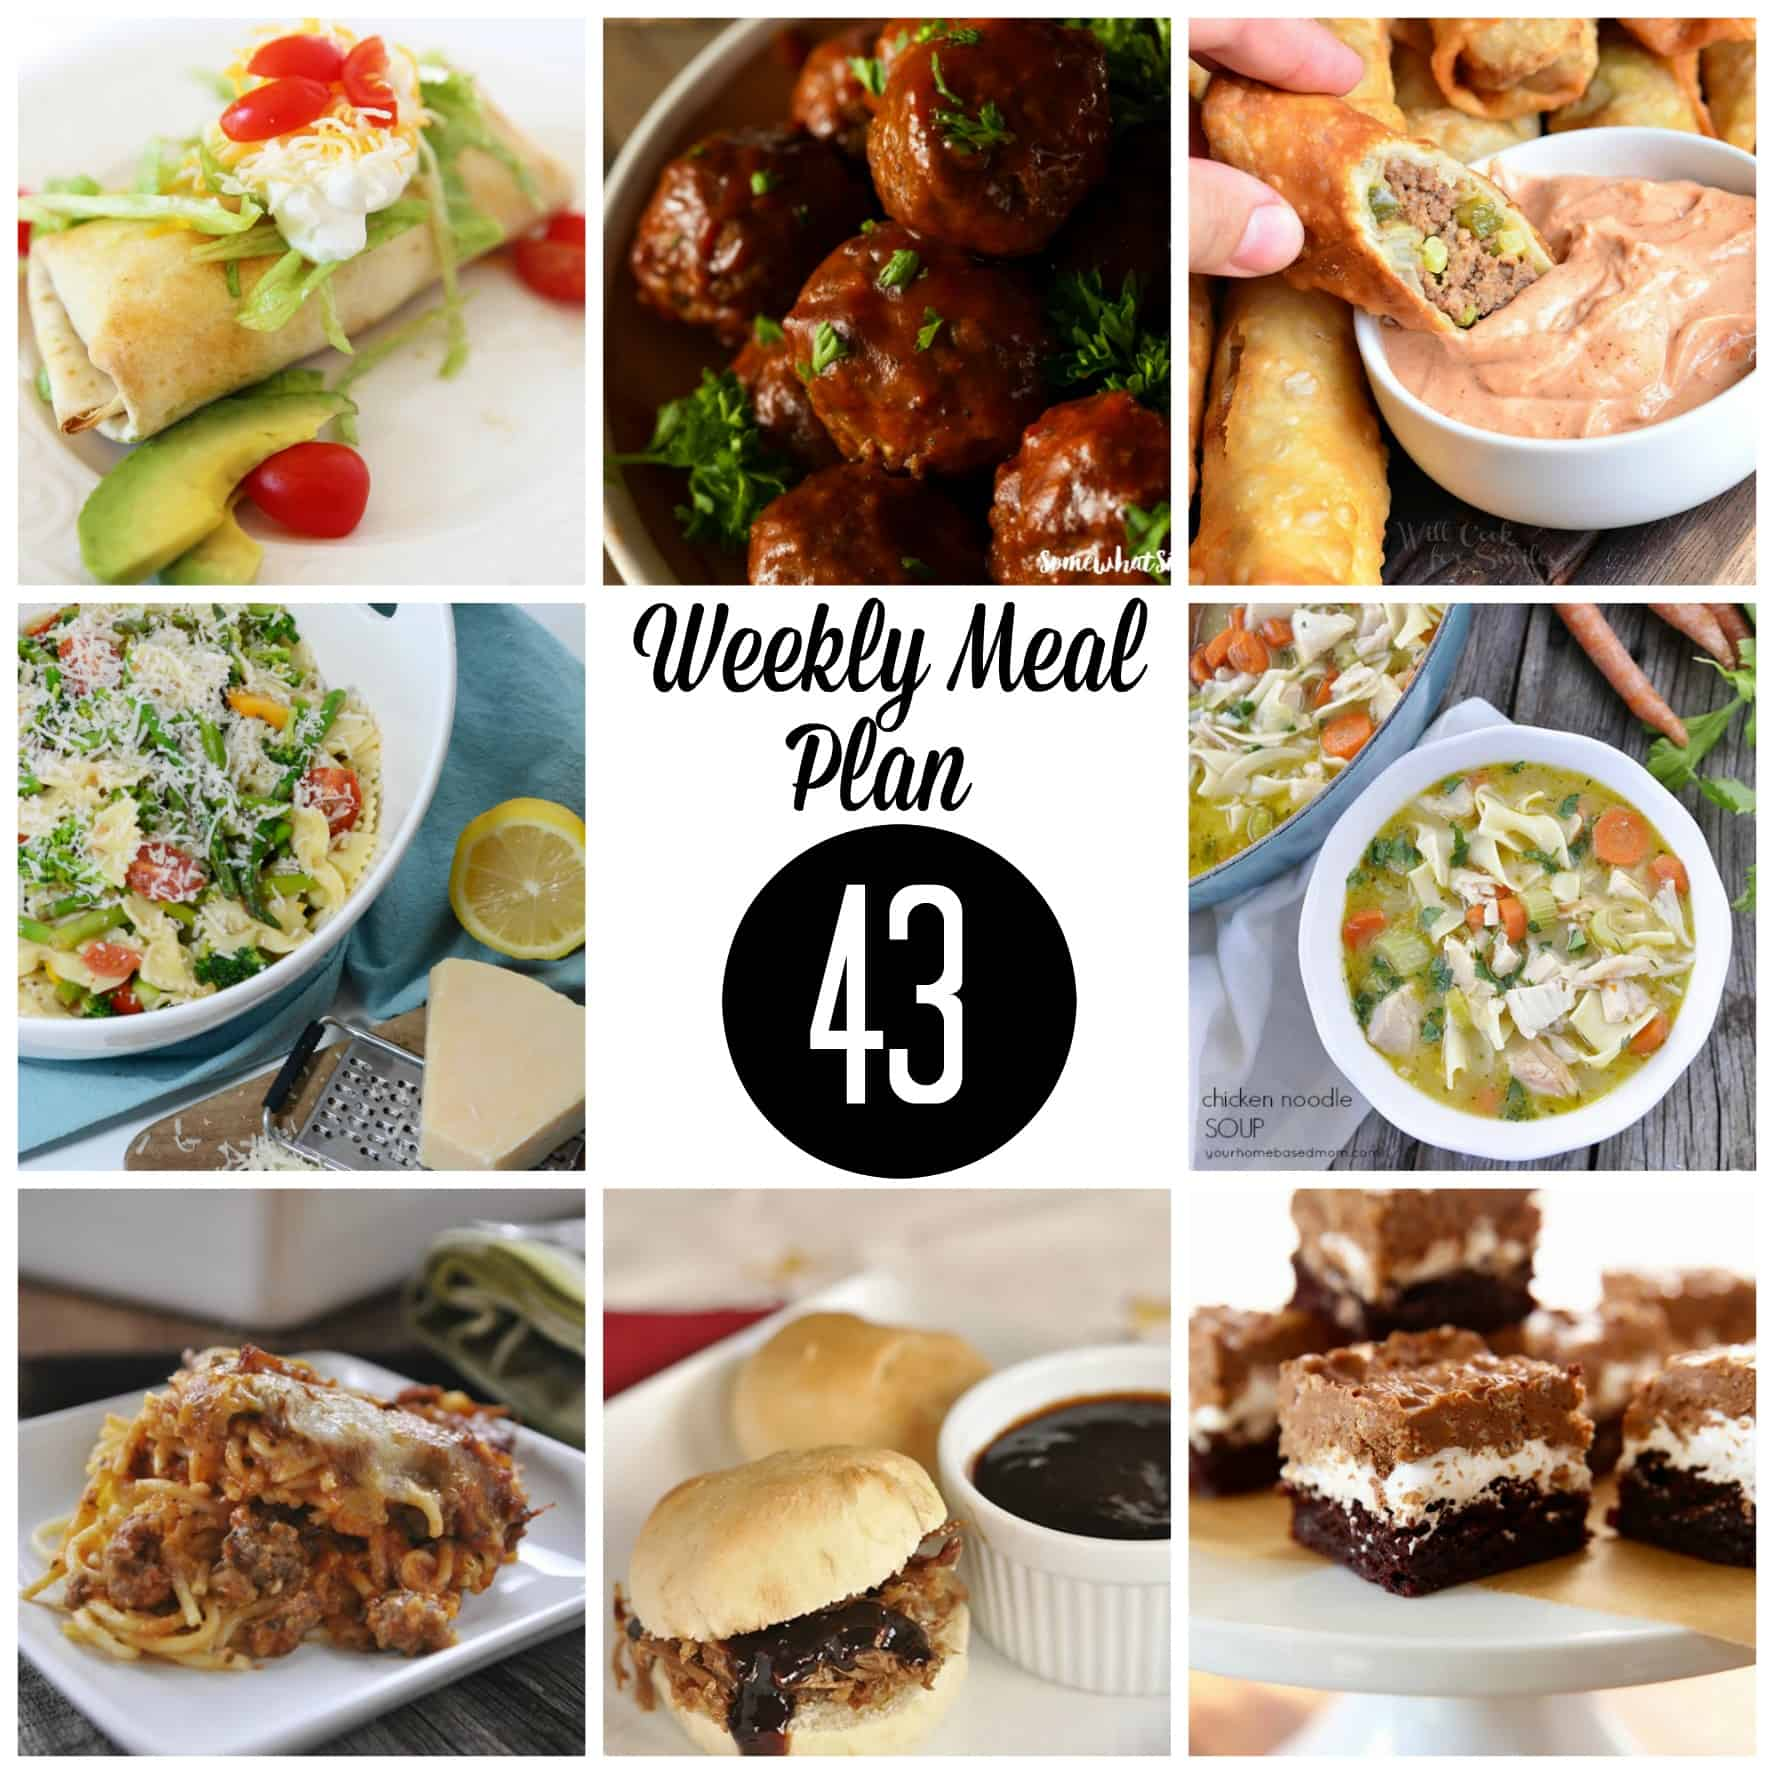 Weekly meal plan 43 square